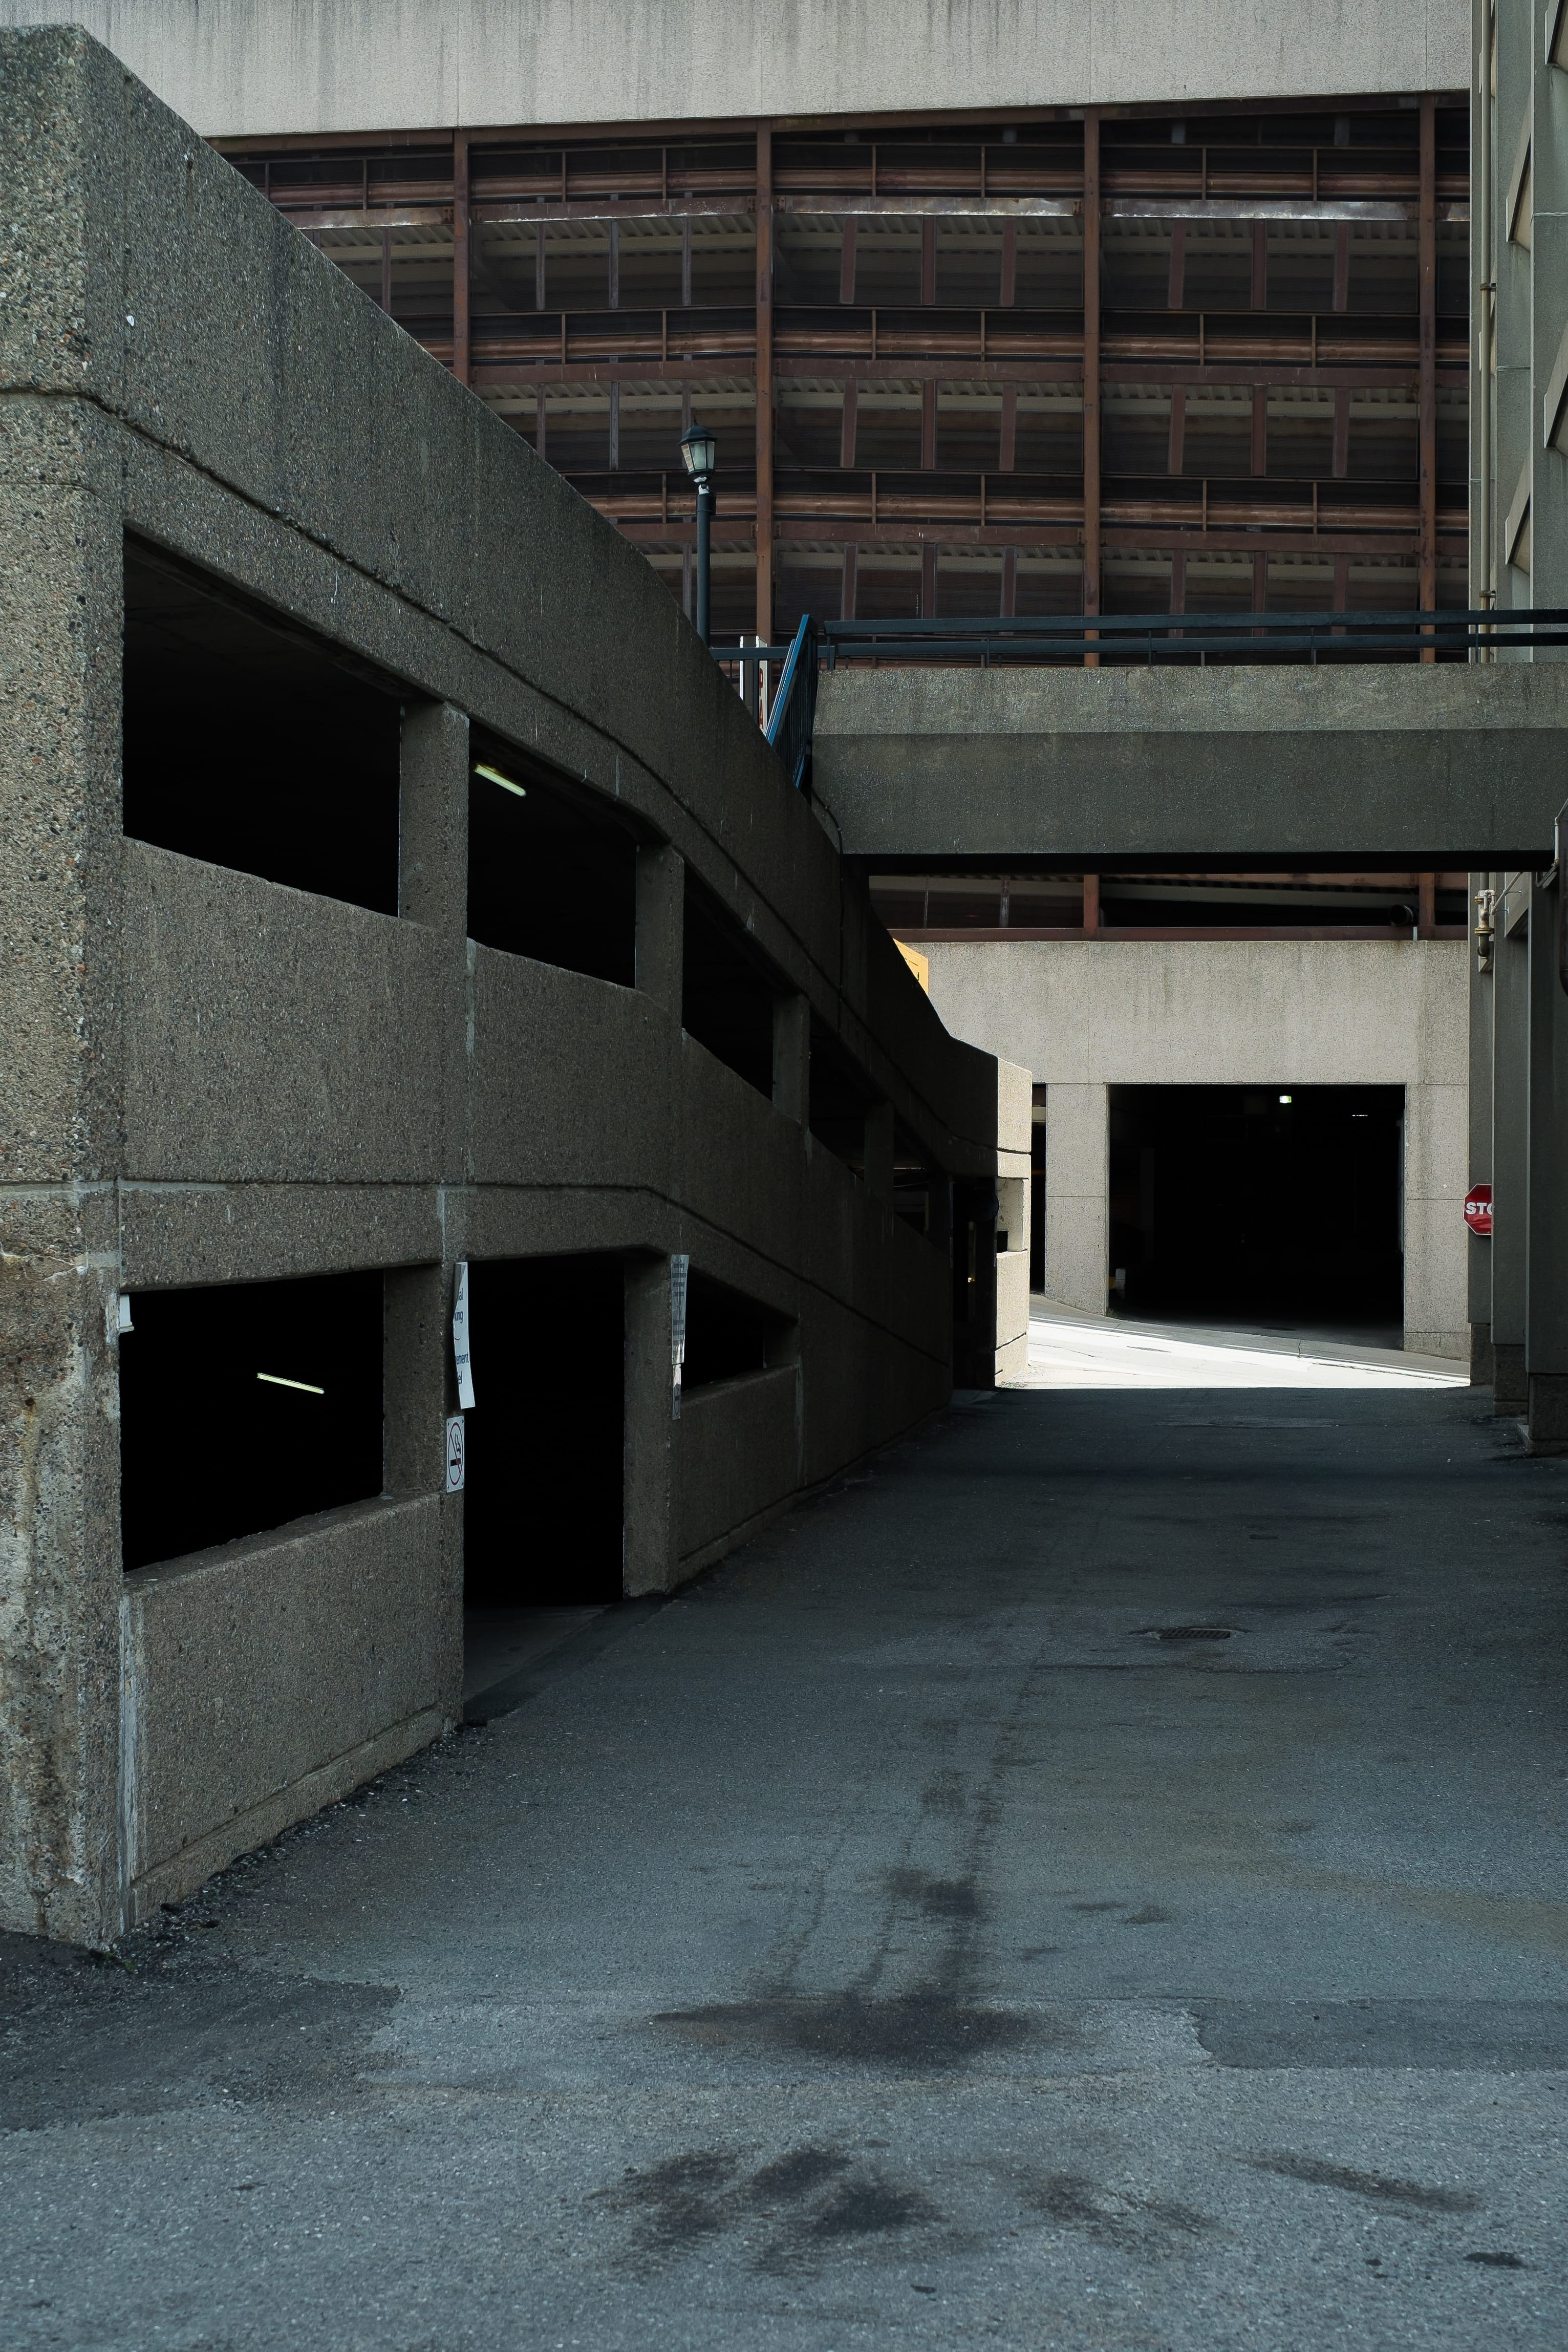 A photograph depicting Old City Hall Parking Lot